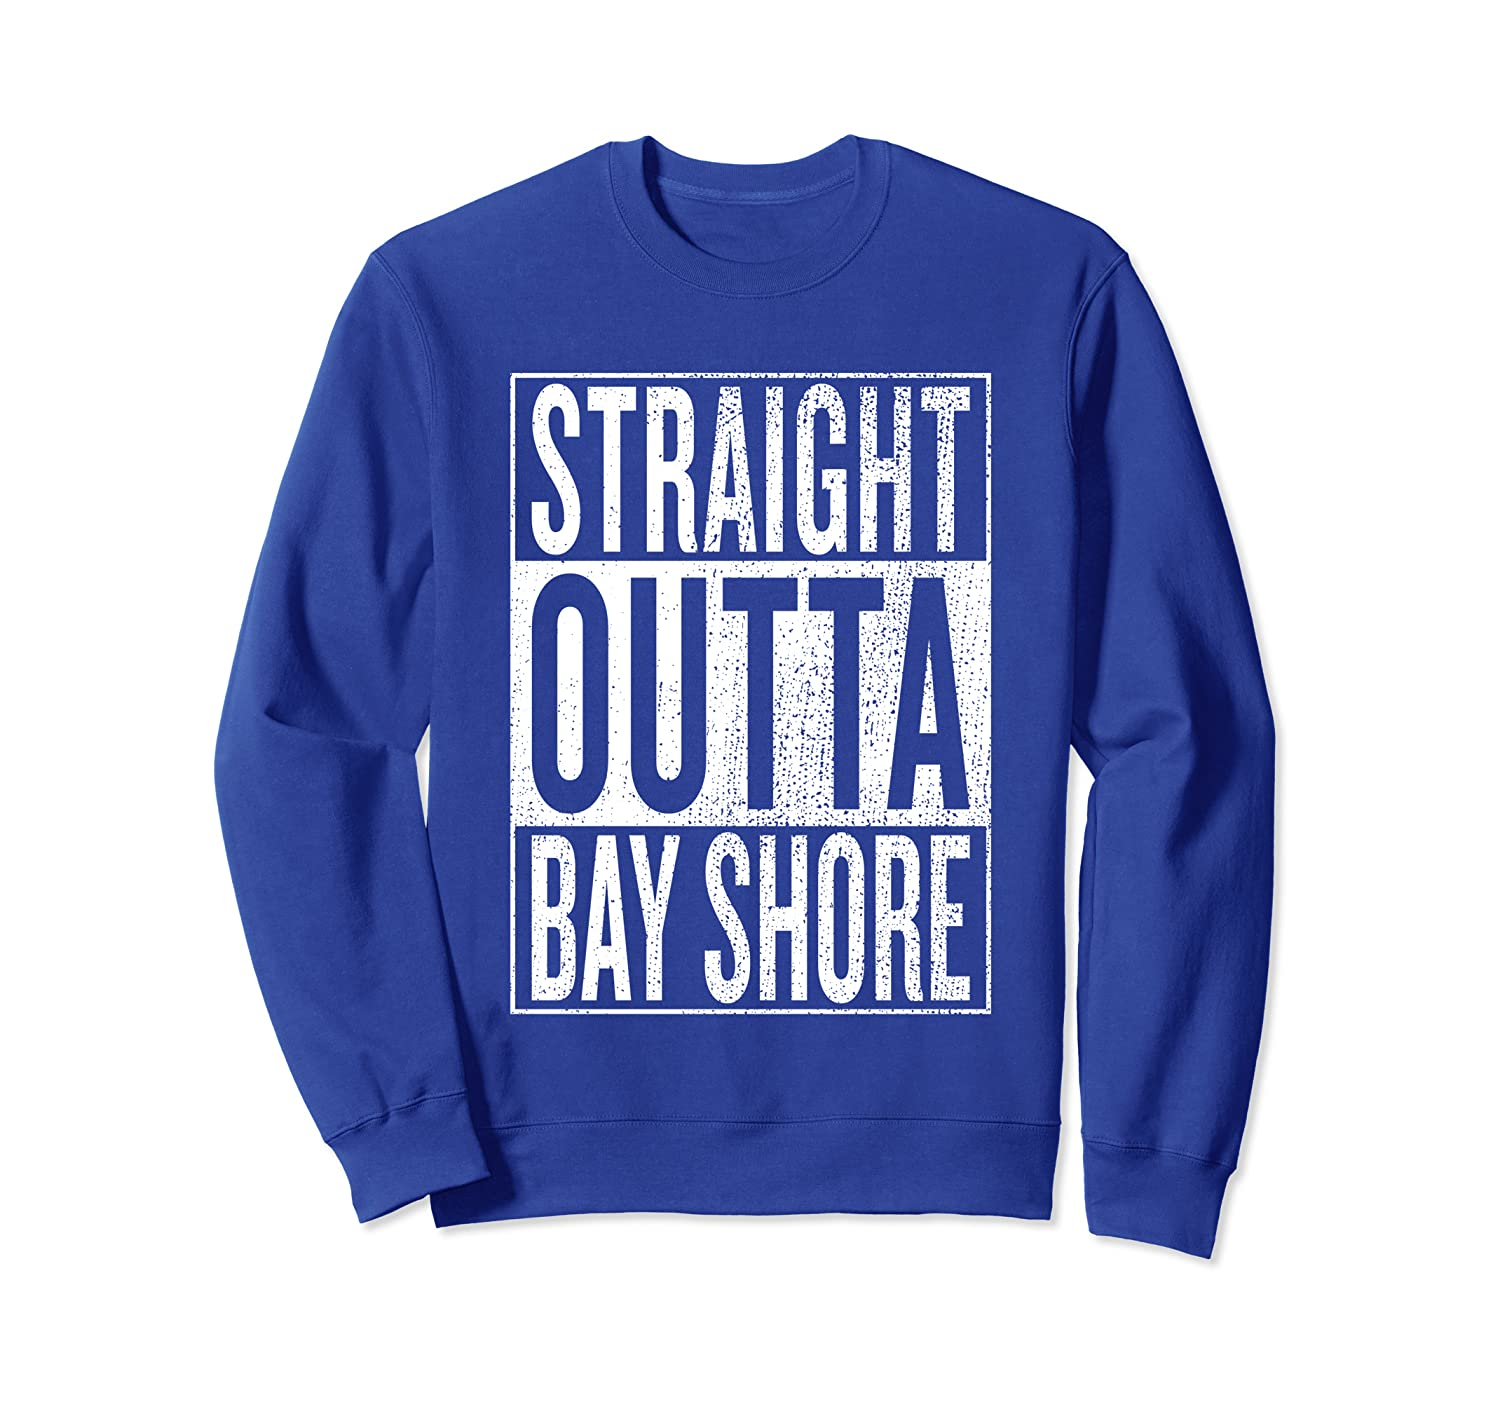 Straight Outta Bay Shore Great Travel Outfit & Gift Idea Sweatshirt-TH